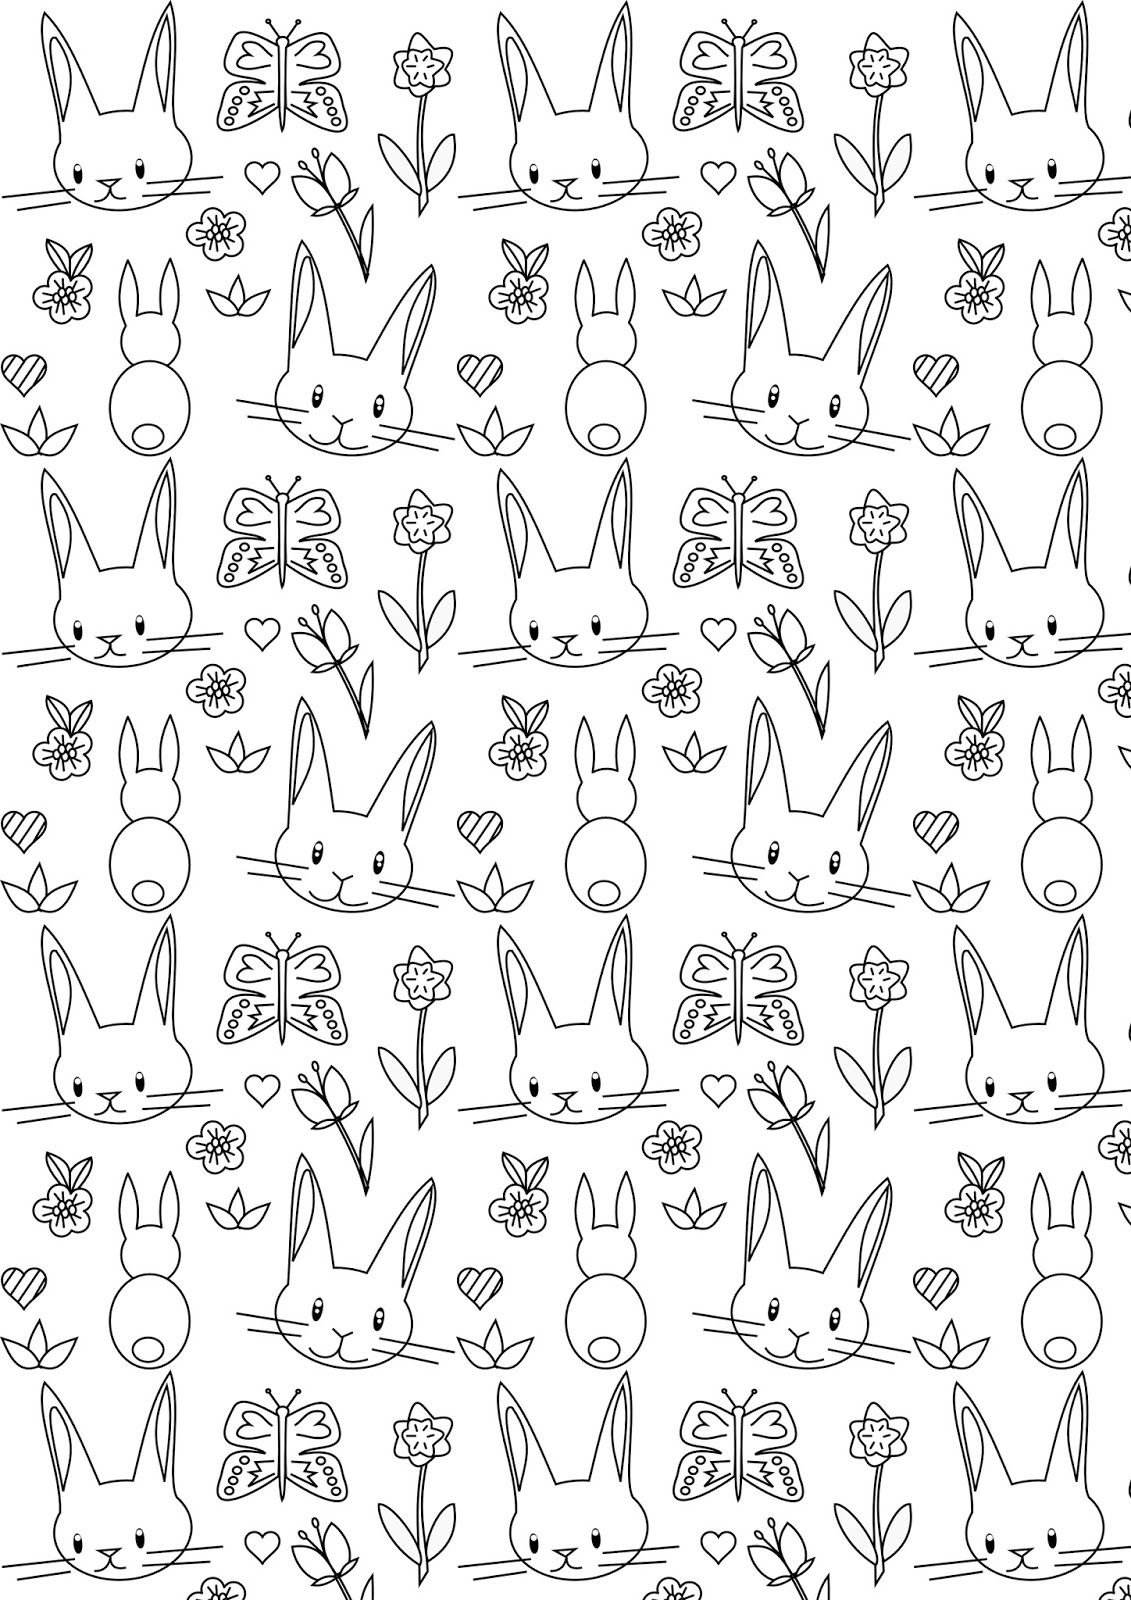 Free Printable Bunny Coloring Page Ausdruckbares